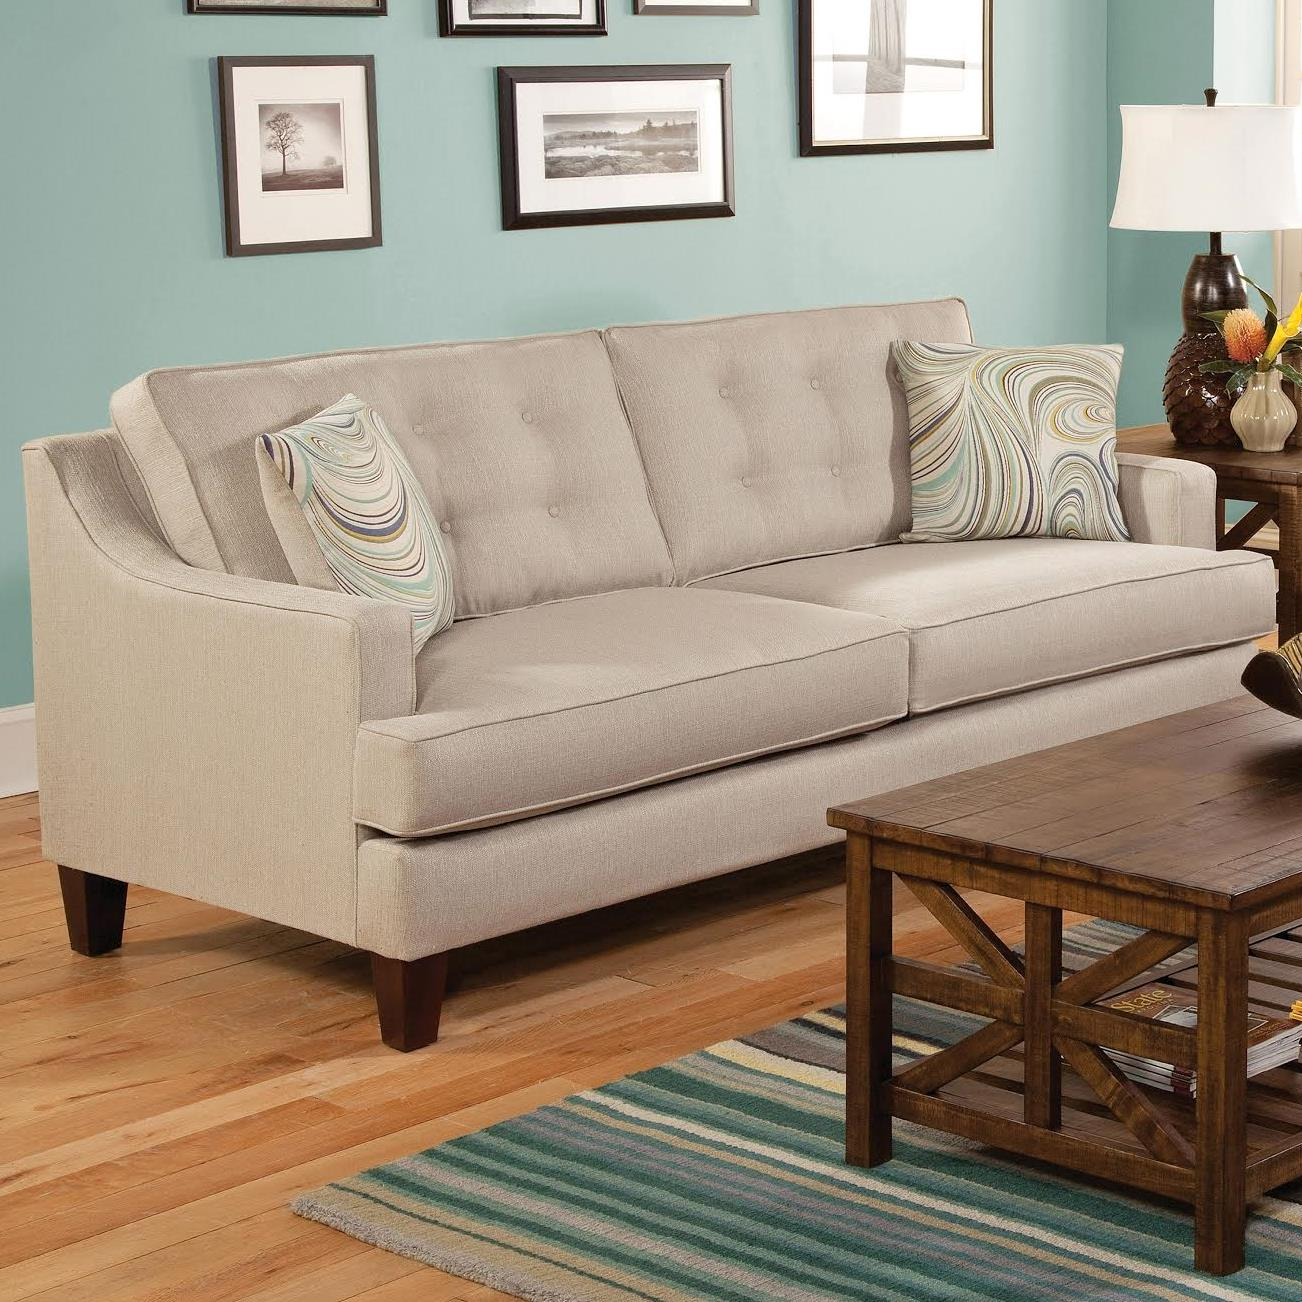 Charmant Belfort Essentials Anders Sofa   Item Number: 3200 30 OffWhite